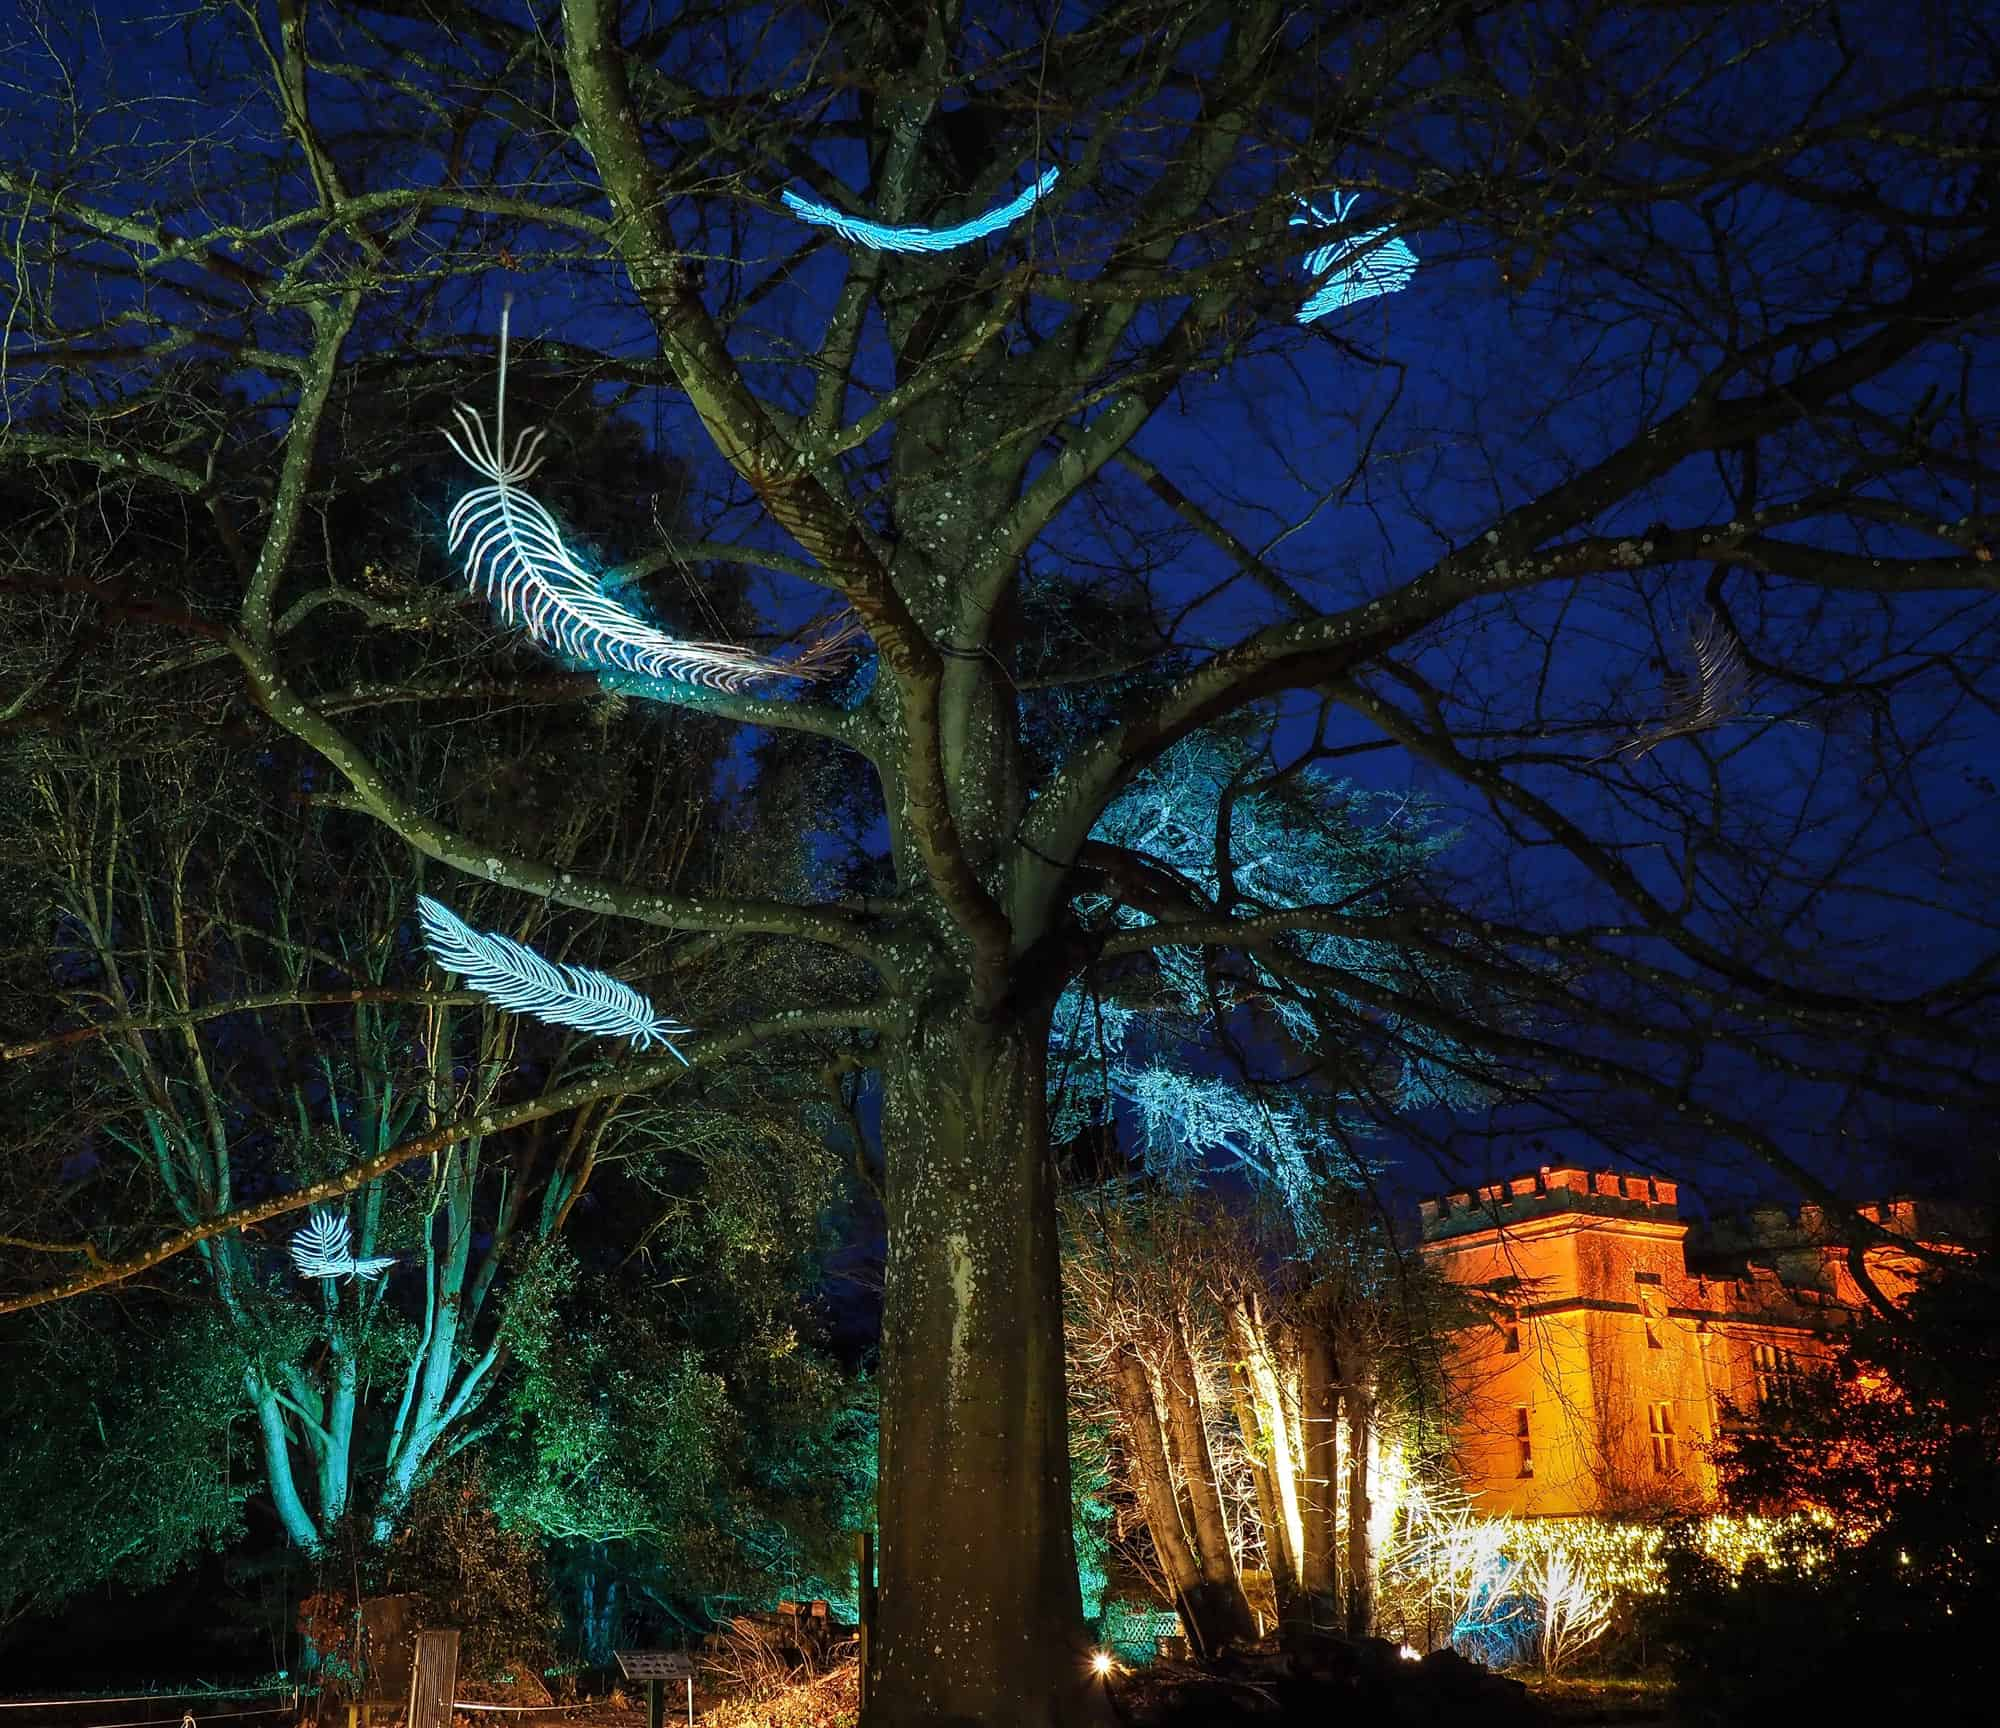 2017 Sudeley Castle Spectacle of Light Photo Gallery 28